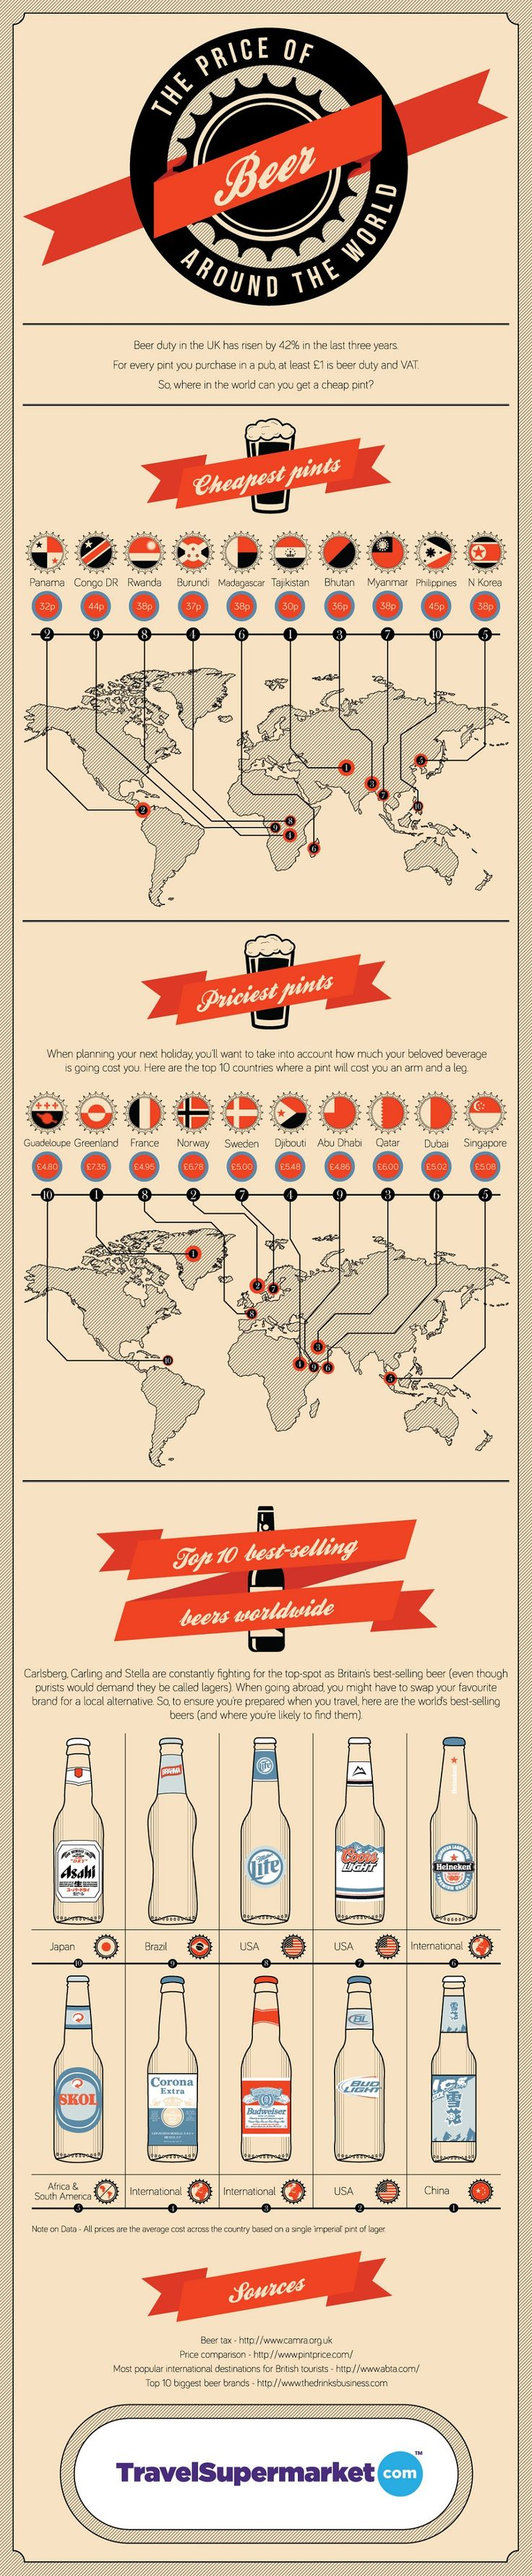 #Drinks #infographic - The price of #beer around the World - http://www.finedininglovers.com/blog/food-drinks/the-price-of-beer-around-the-world/